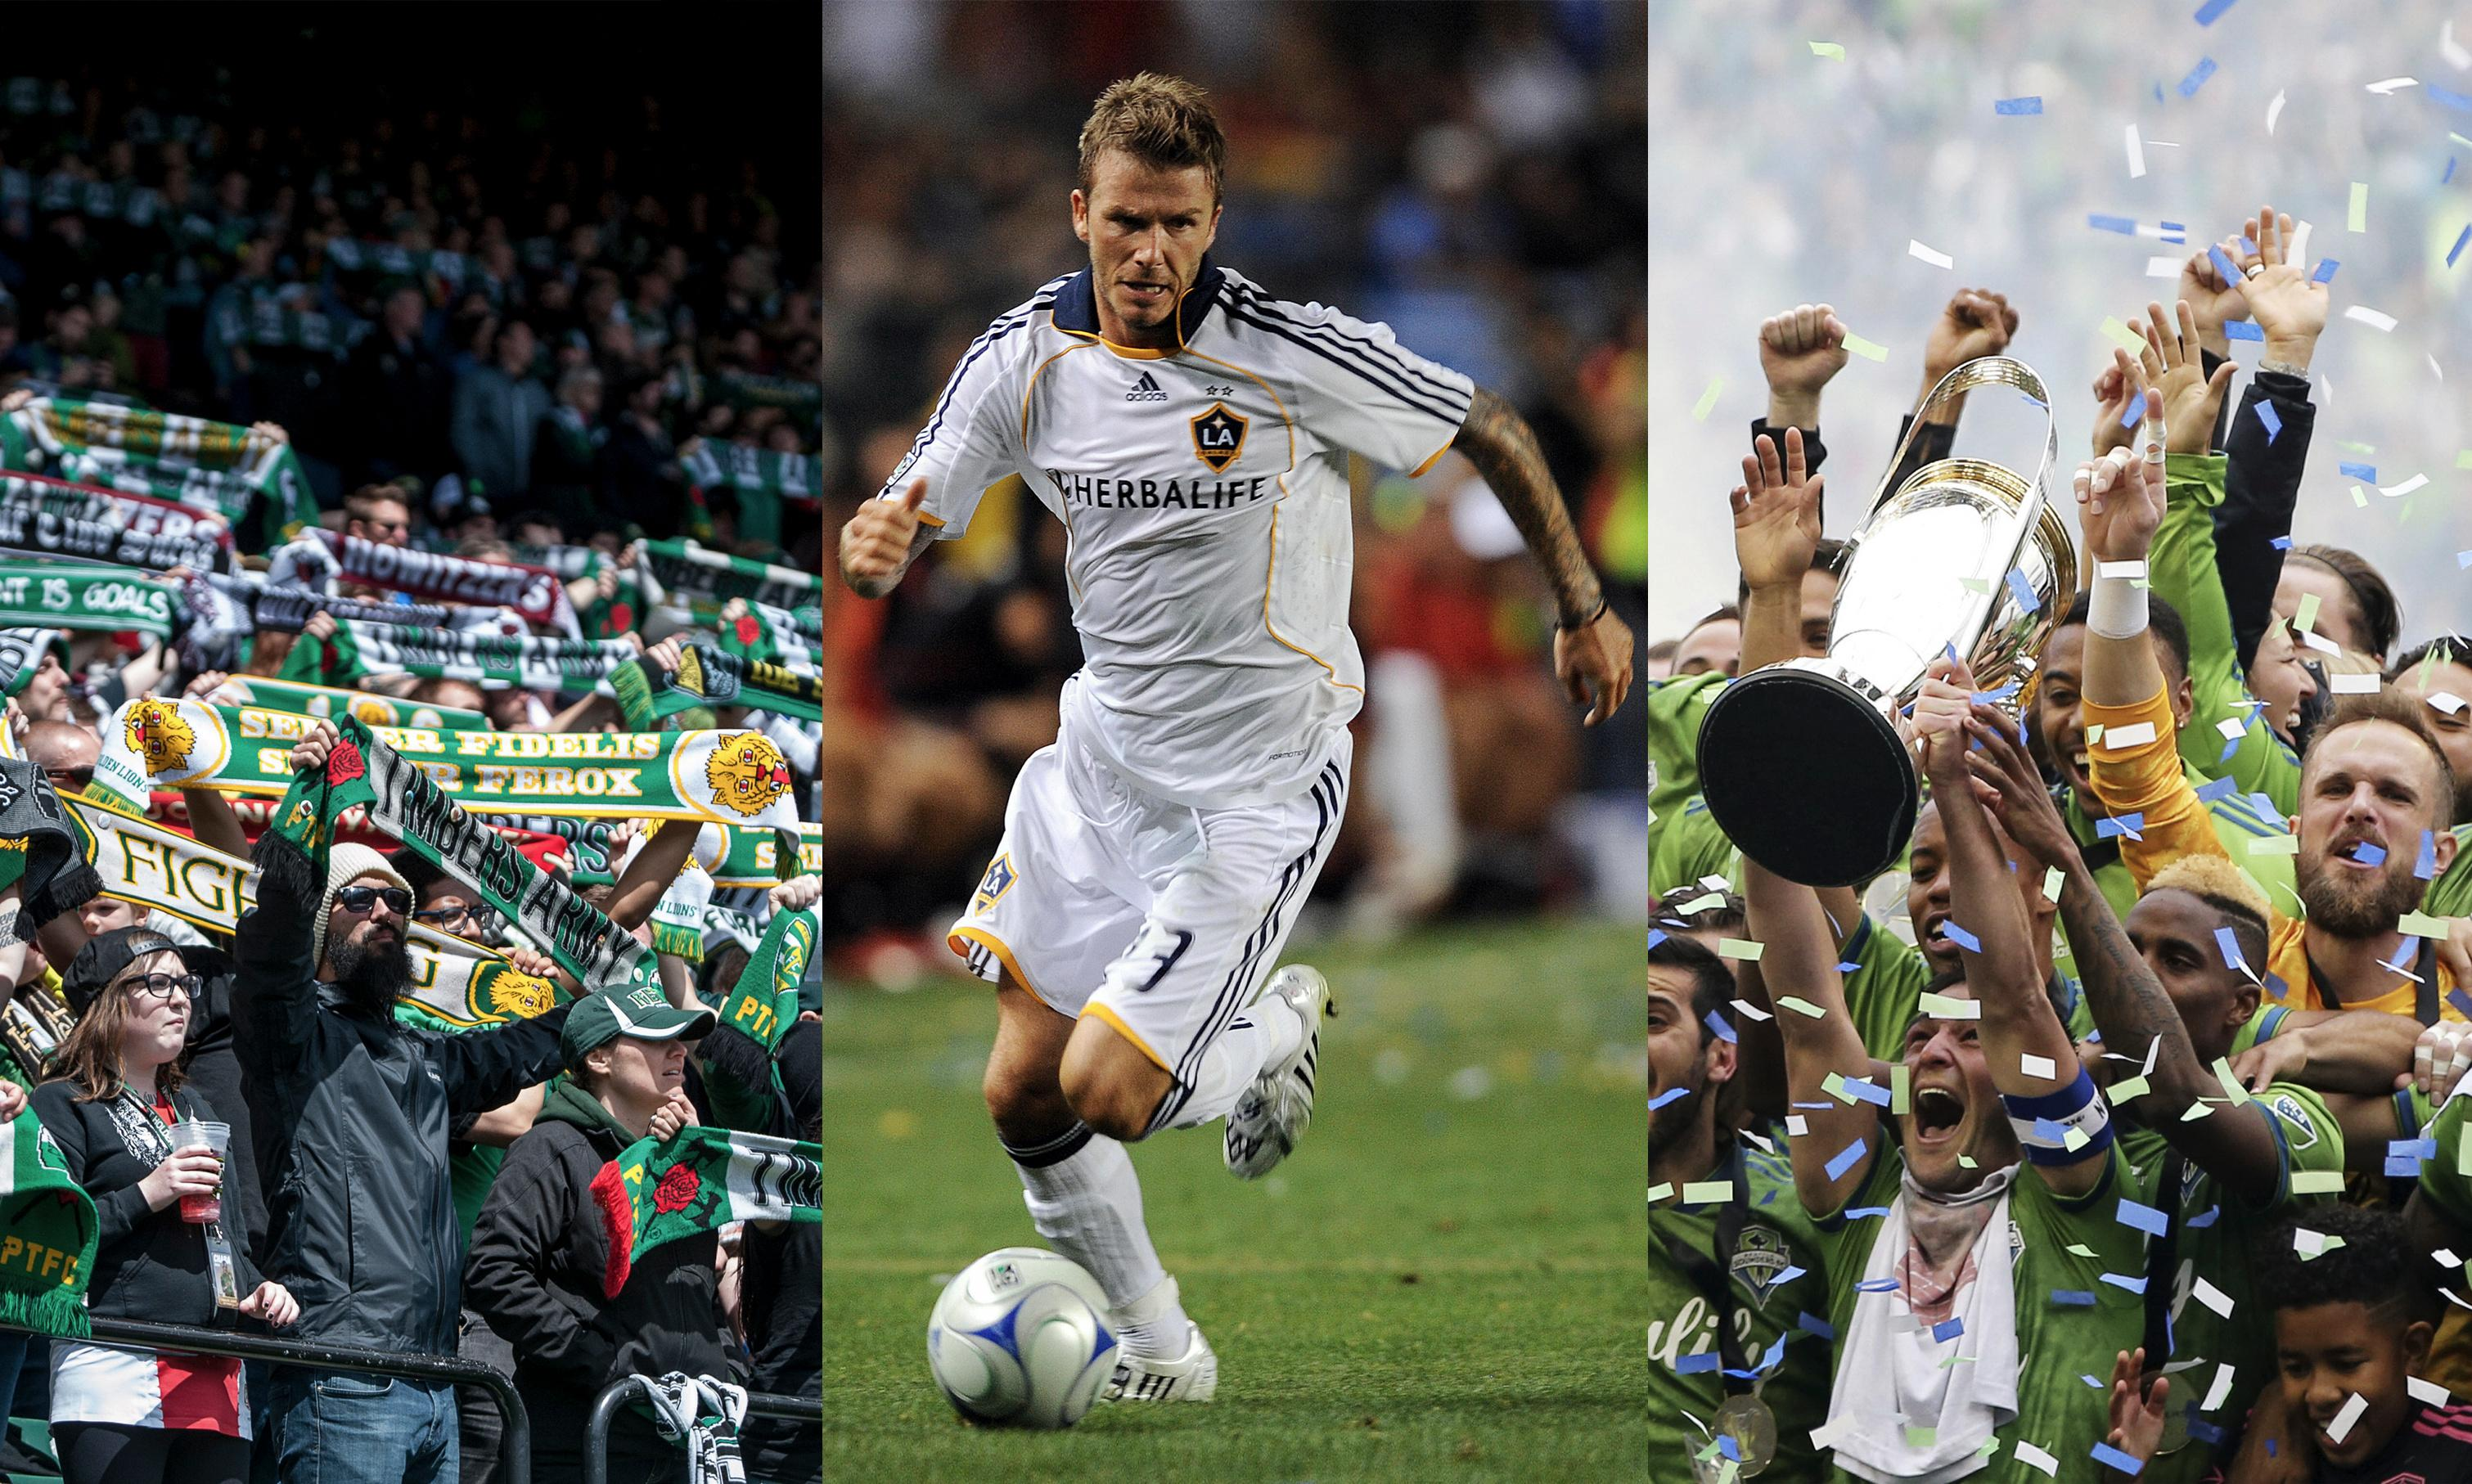 Foreign stars, $325m fees and an eye on Mexico: MLS approaches Season 25